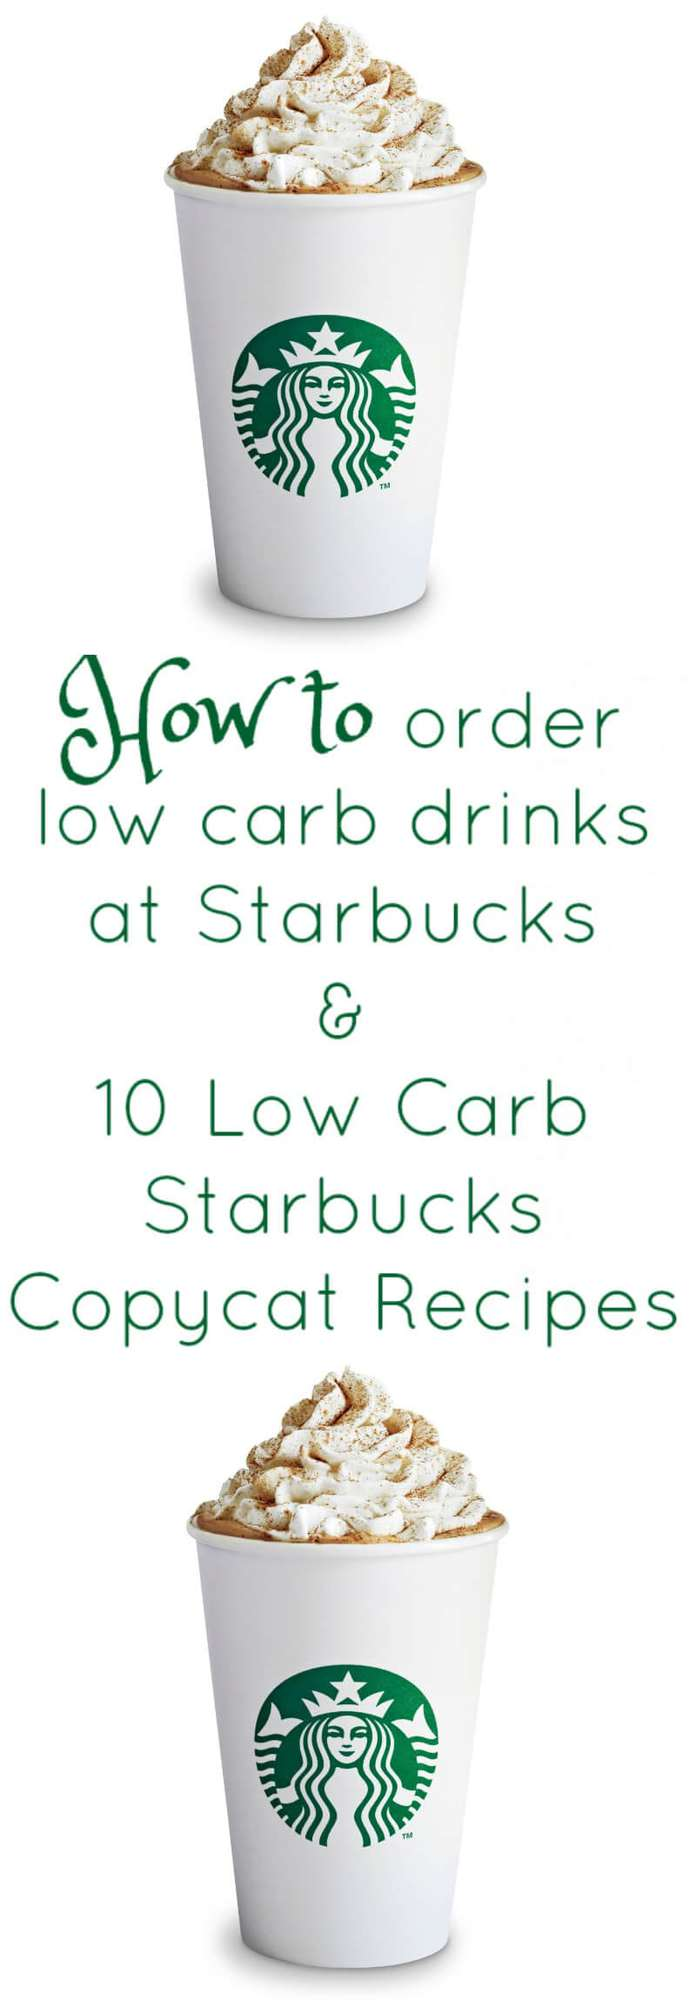 How to Order Low Carb / Keto at Starbucks and 10 Low Carb Starbucks Copycat Recipes